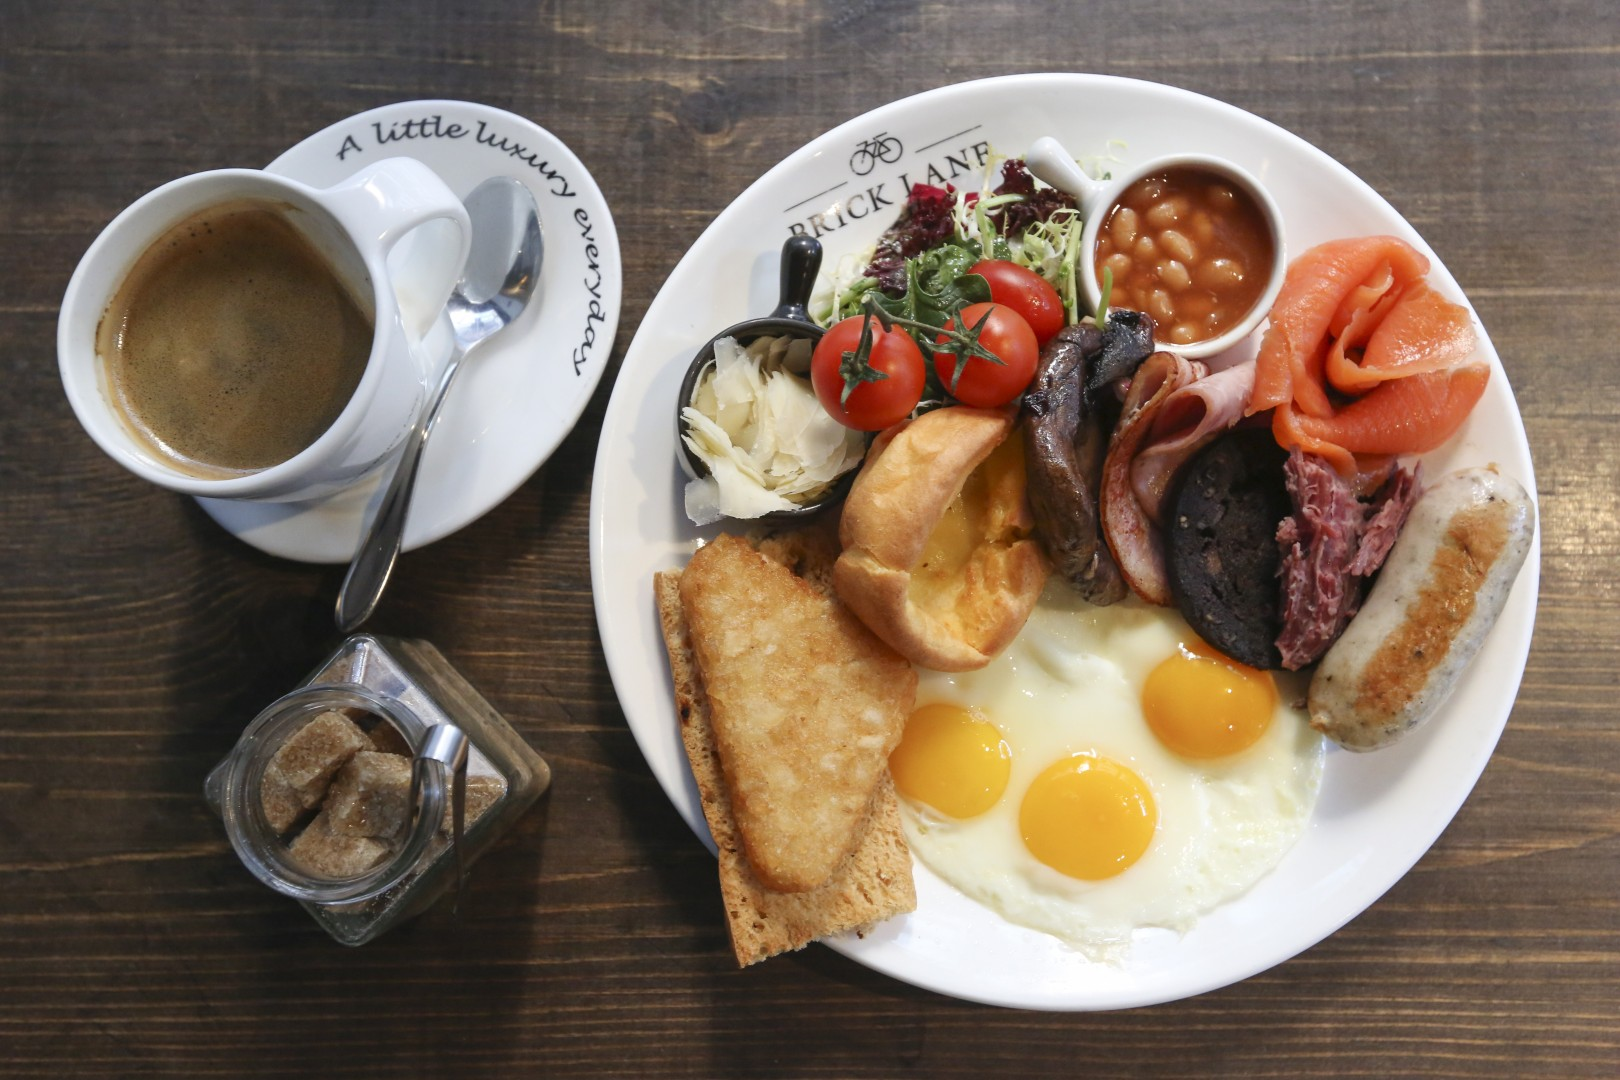 452b8cd0d4a Want British food in Hong Kong? Here are some of your best options | South  China Morning Post